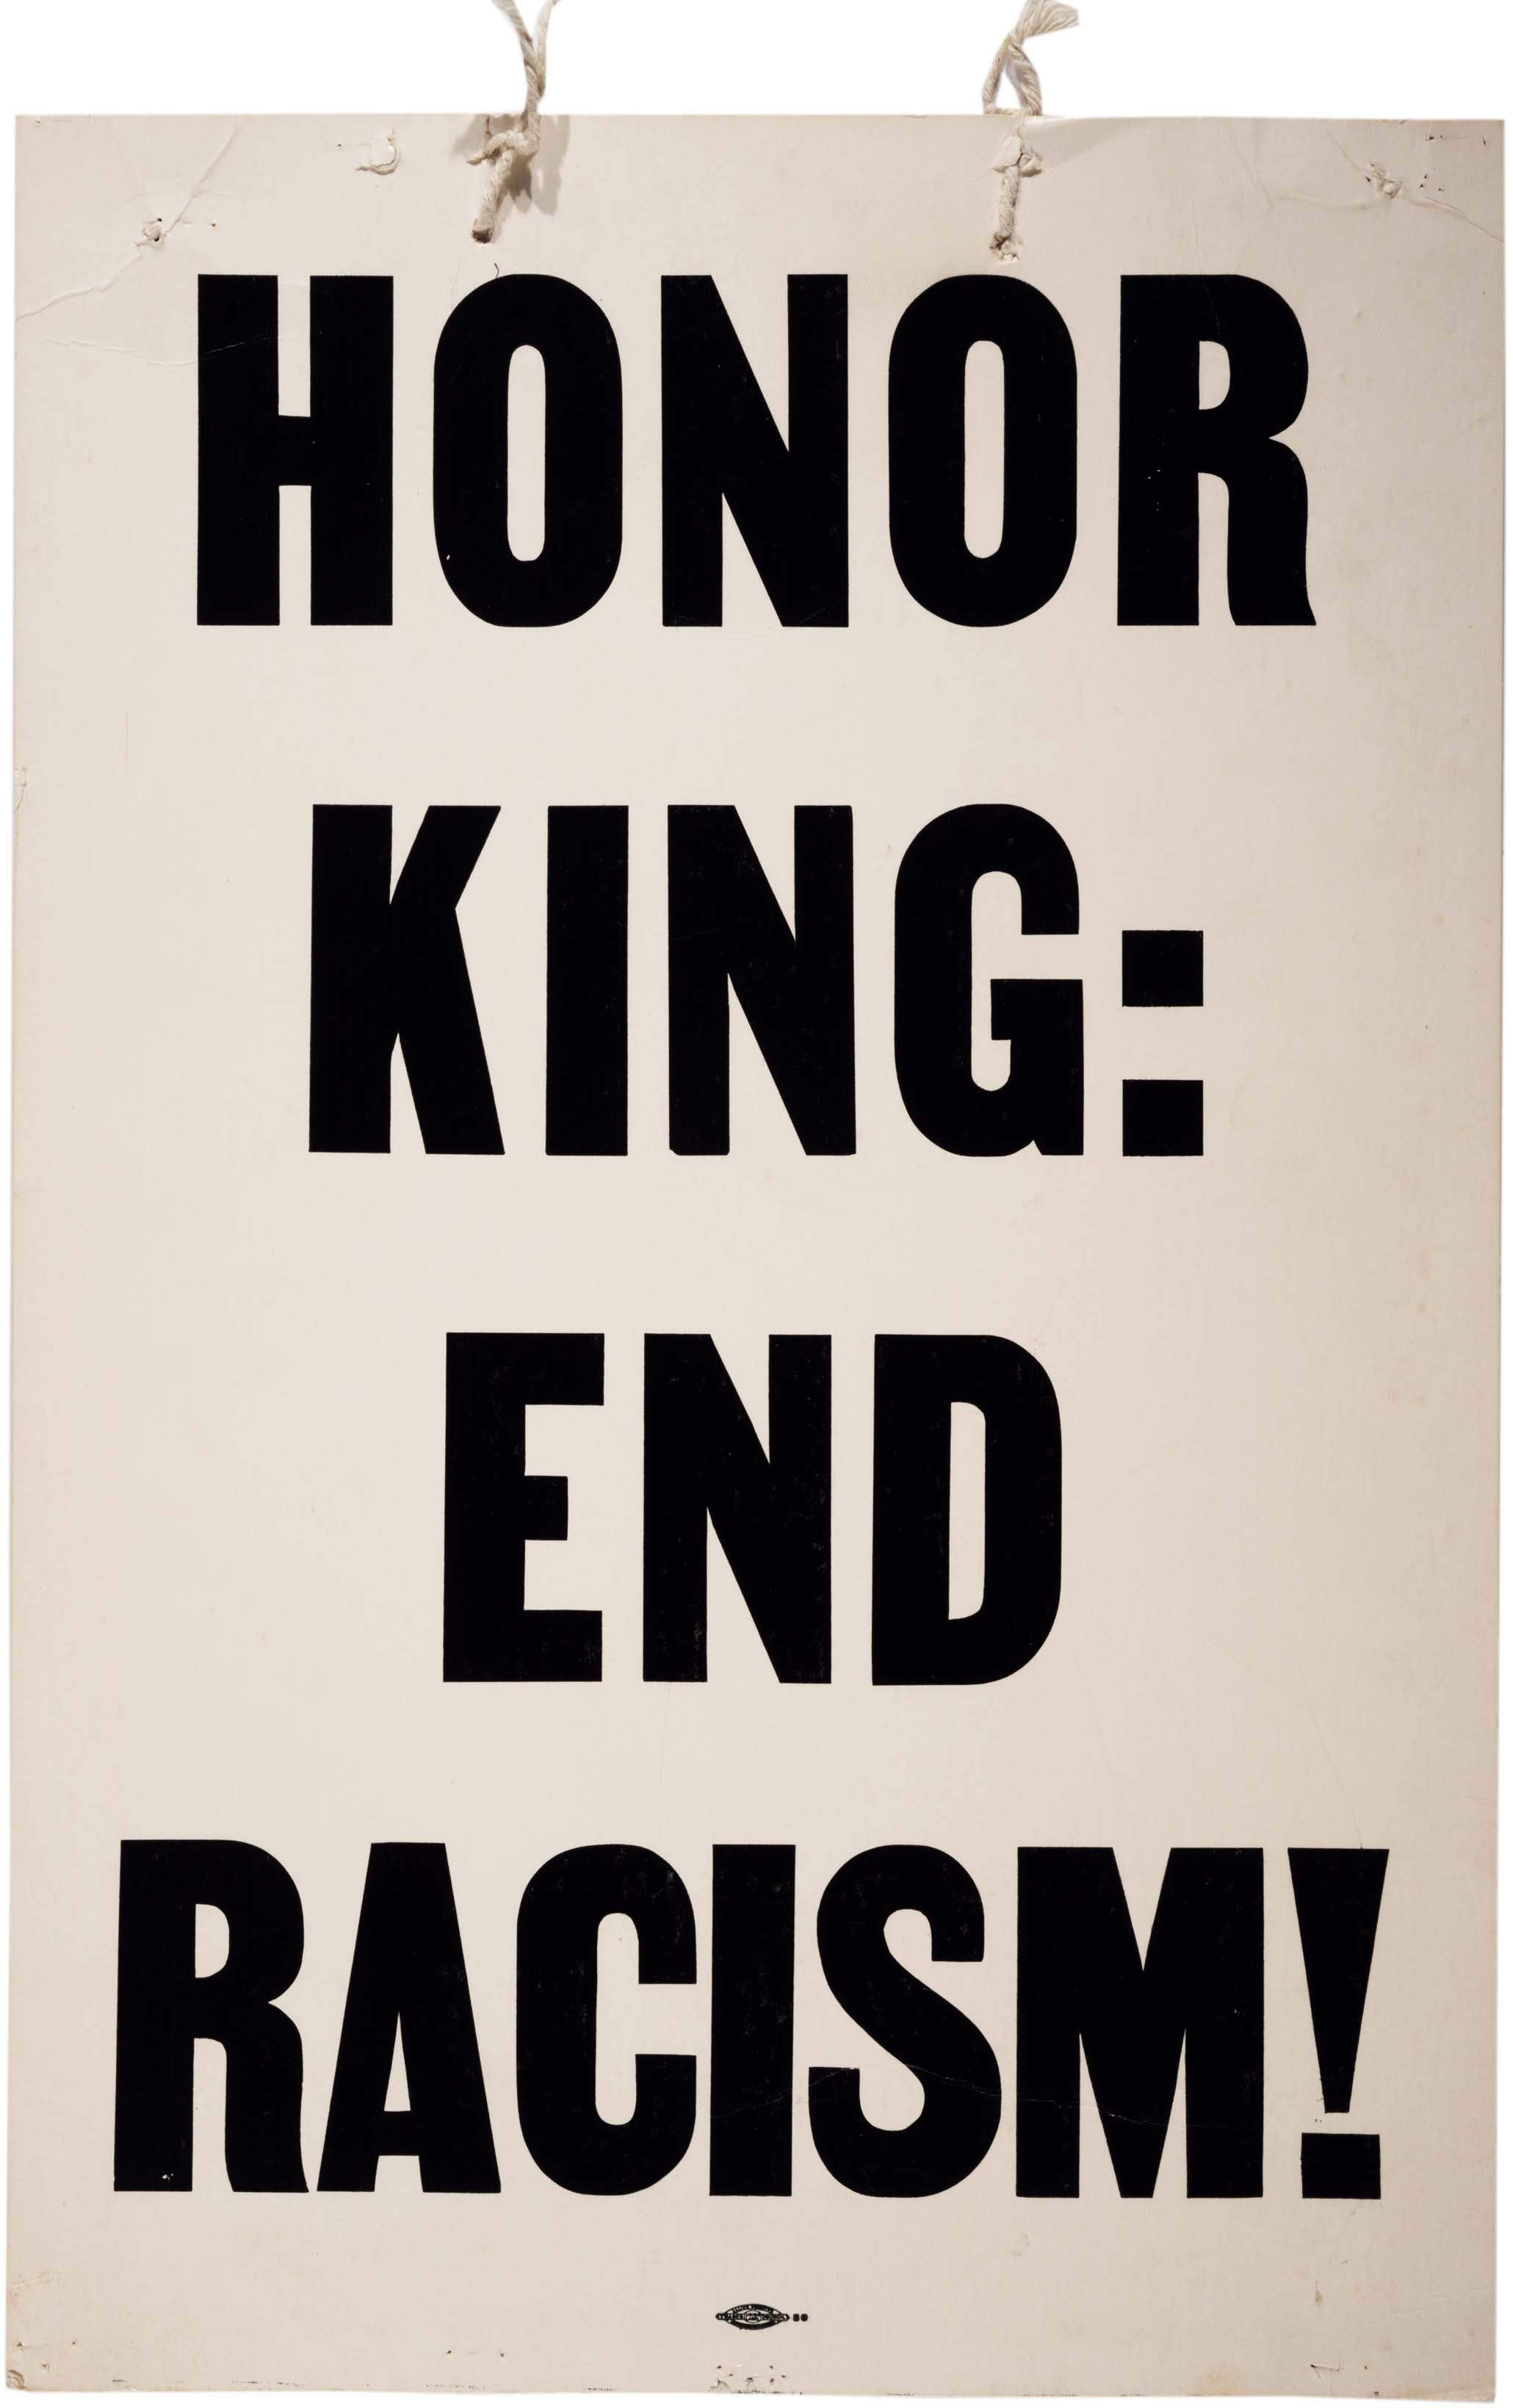 civil rights posters 1968 the gilder lehrman institute of civil rights posters 1968